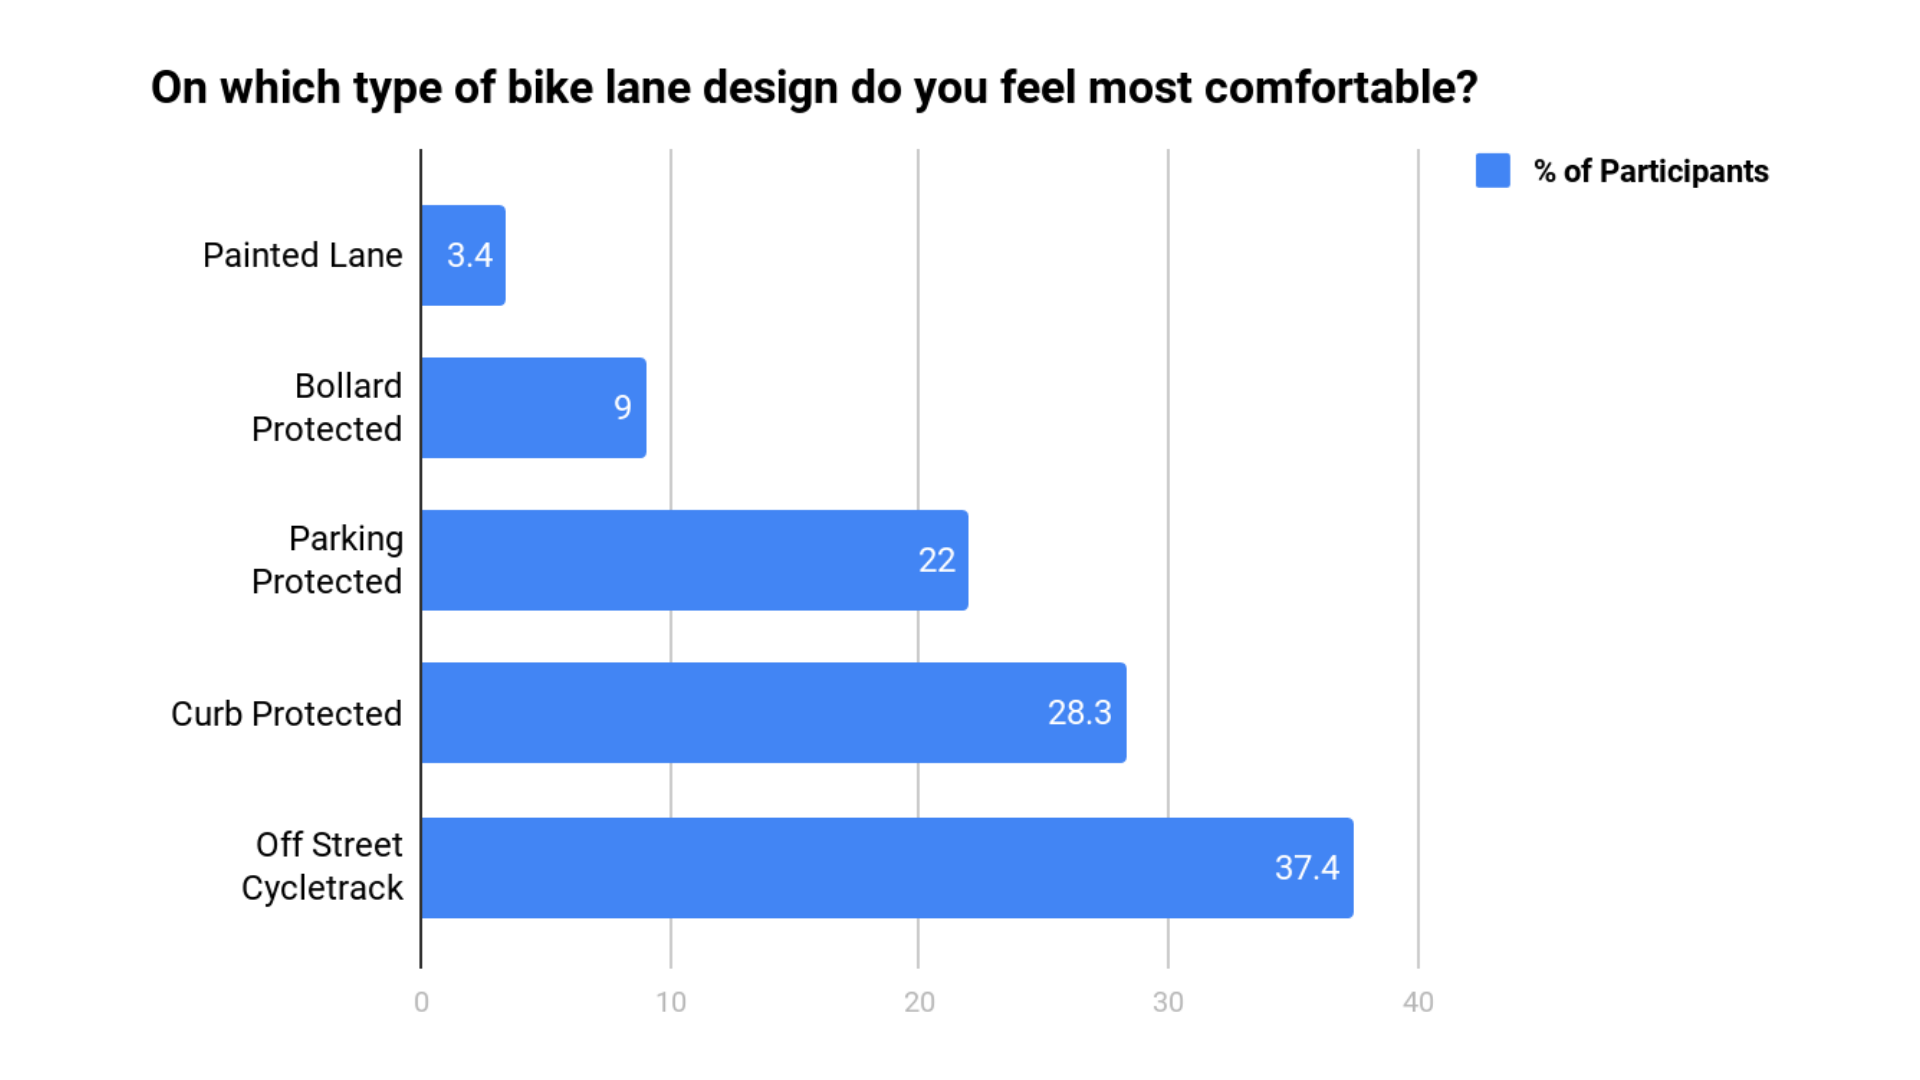 Chart showing 3.4% of participants preferred painted lanes, 9% bollard protected, 22% parking protected, 28.3% curb protected, 37.4% off street cycletrack